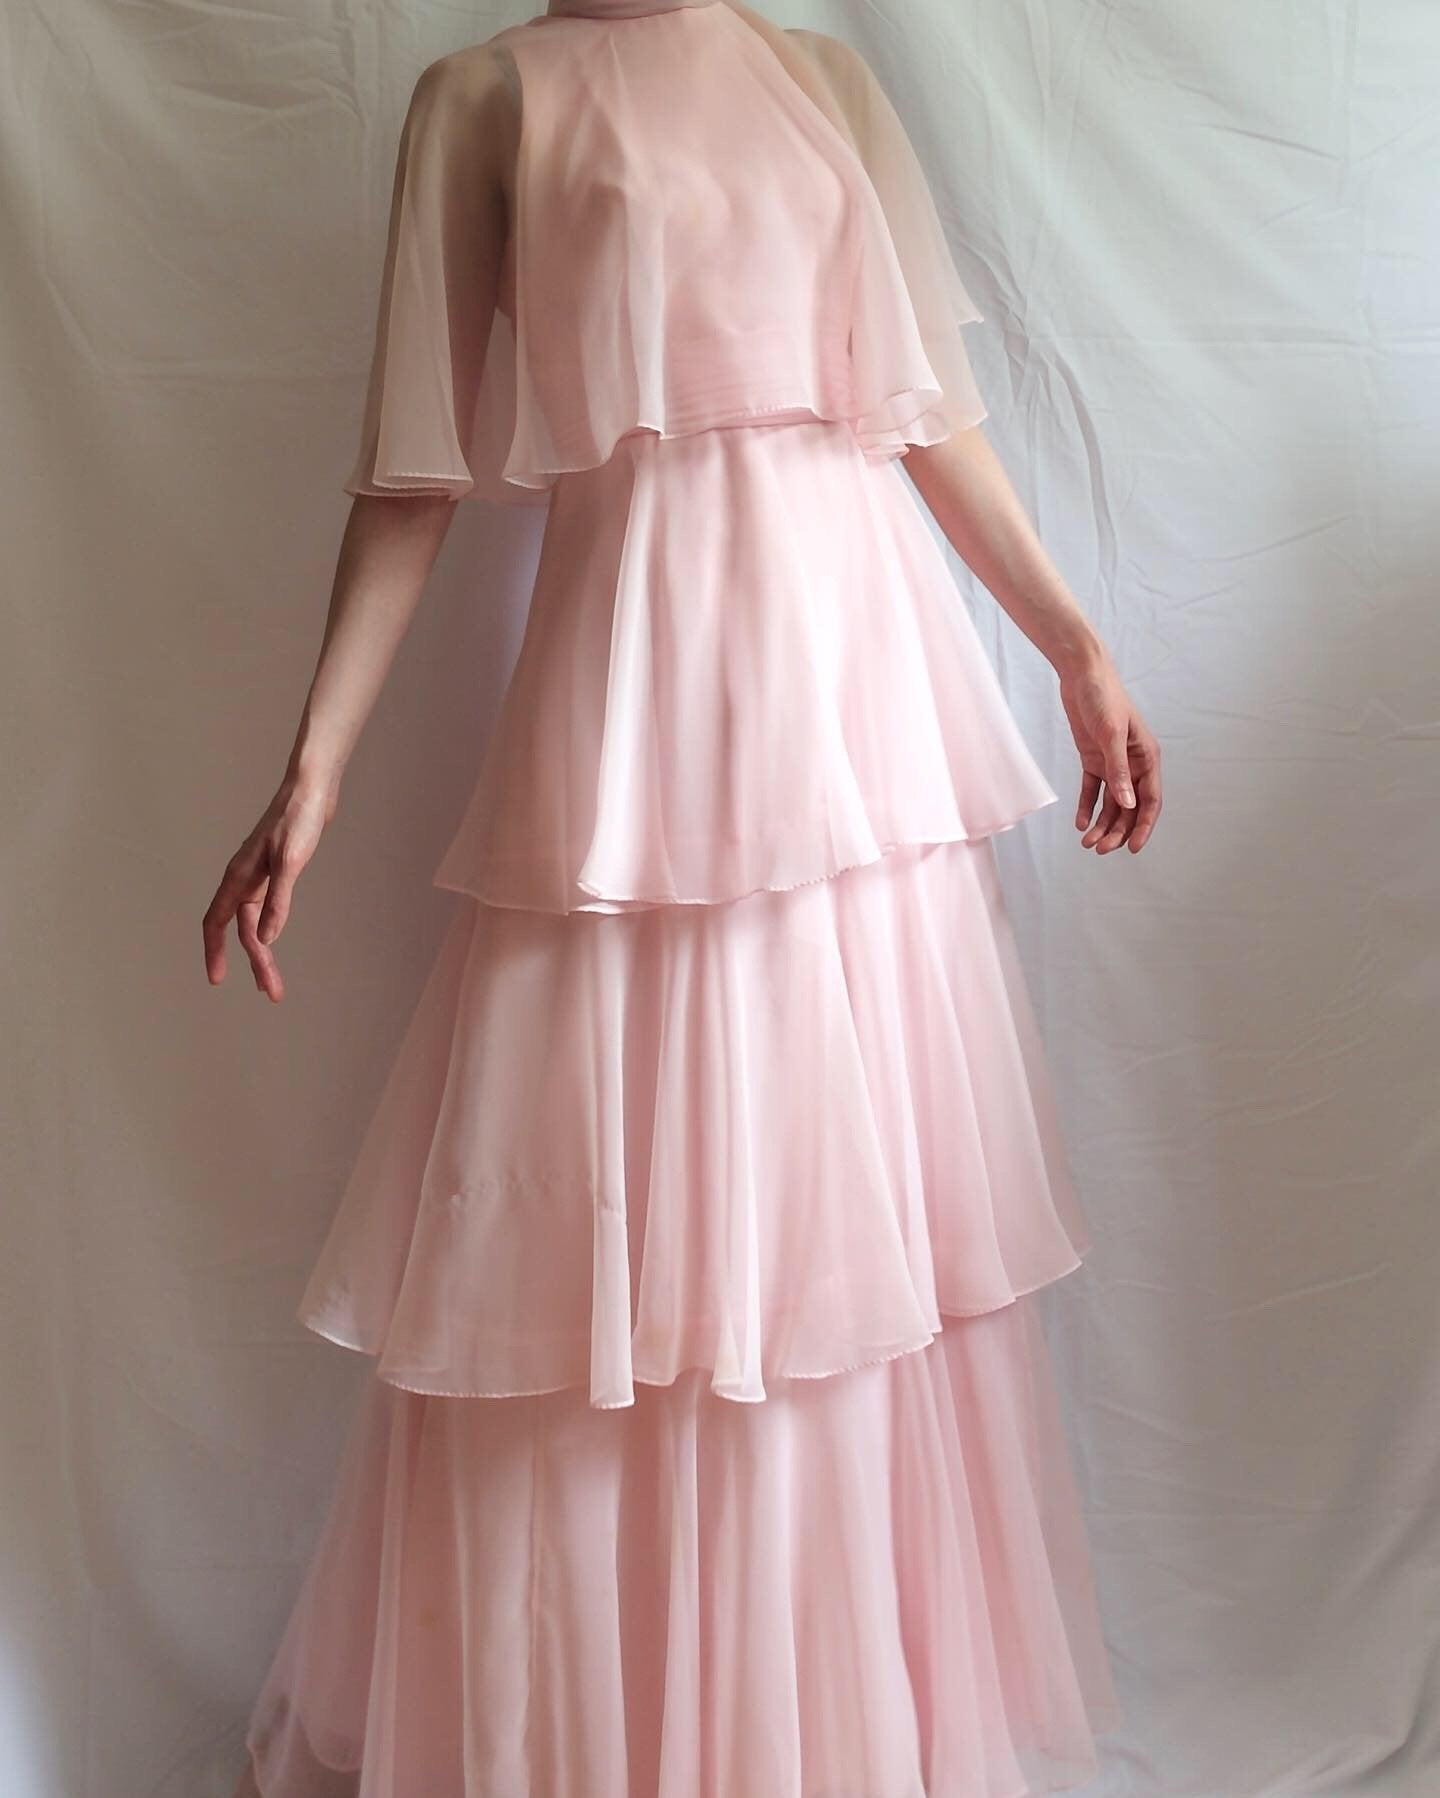 Vintage 1960s pale pink chiffon tiered dress